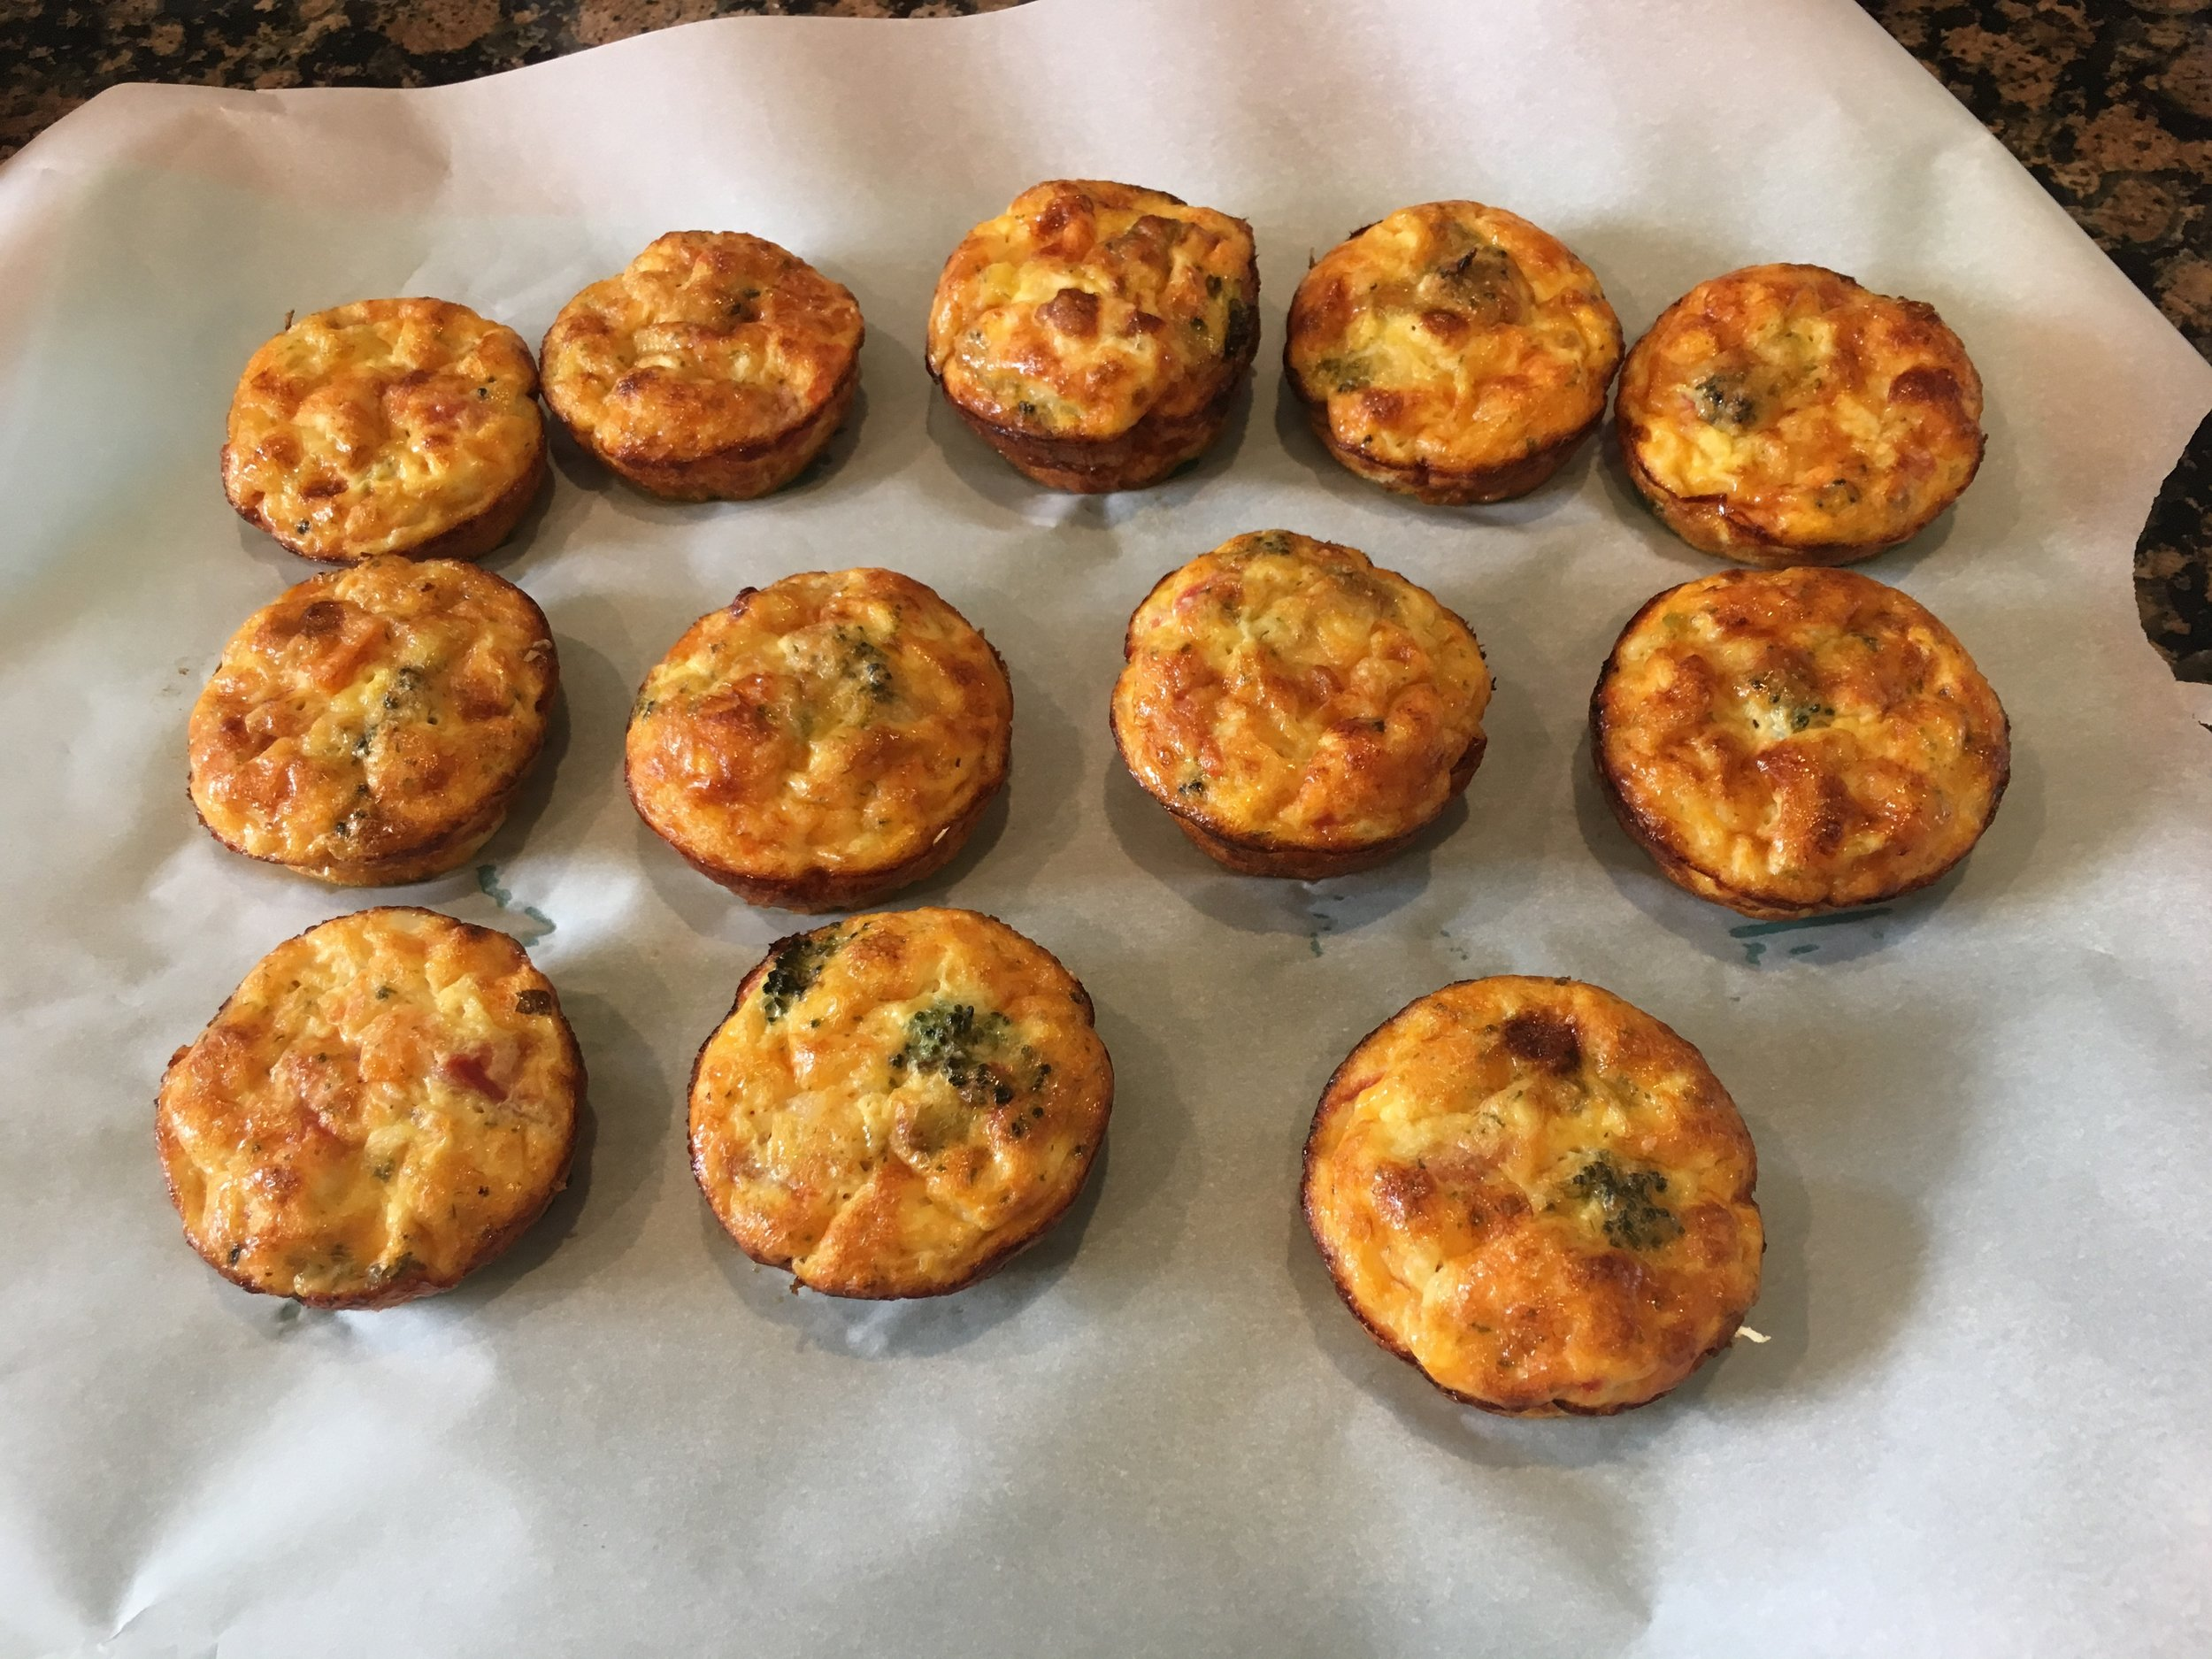 Lifelong Weight Loss Houston, frittatas, low carb